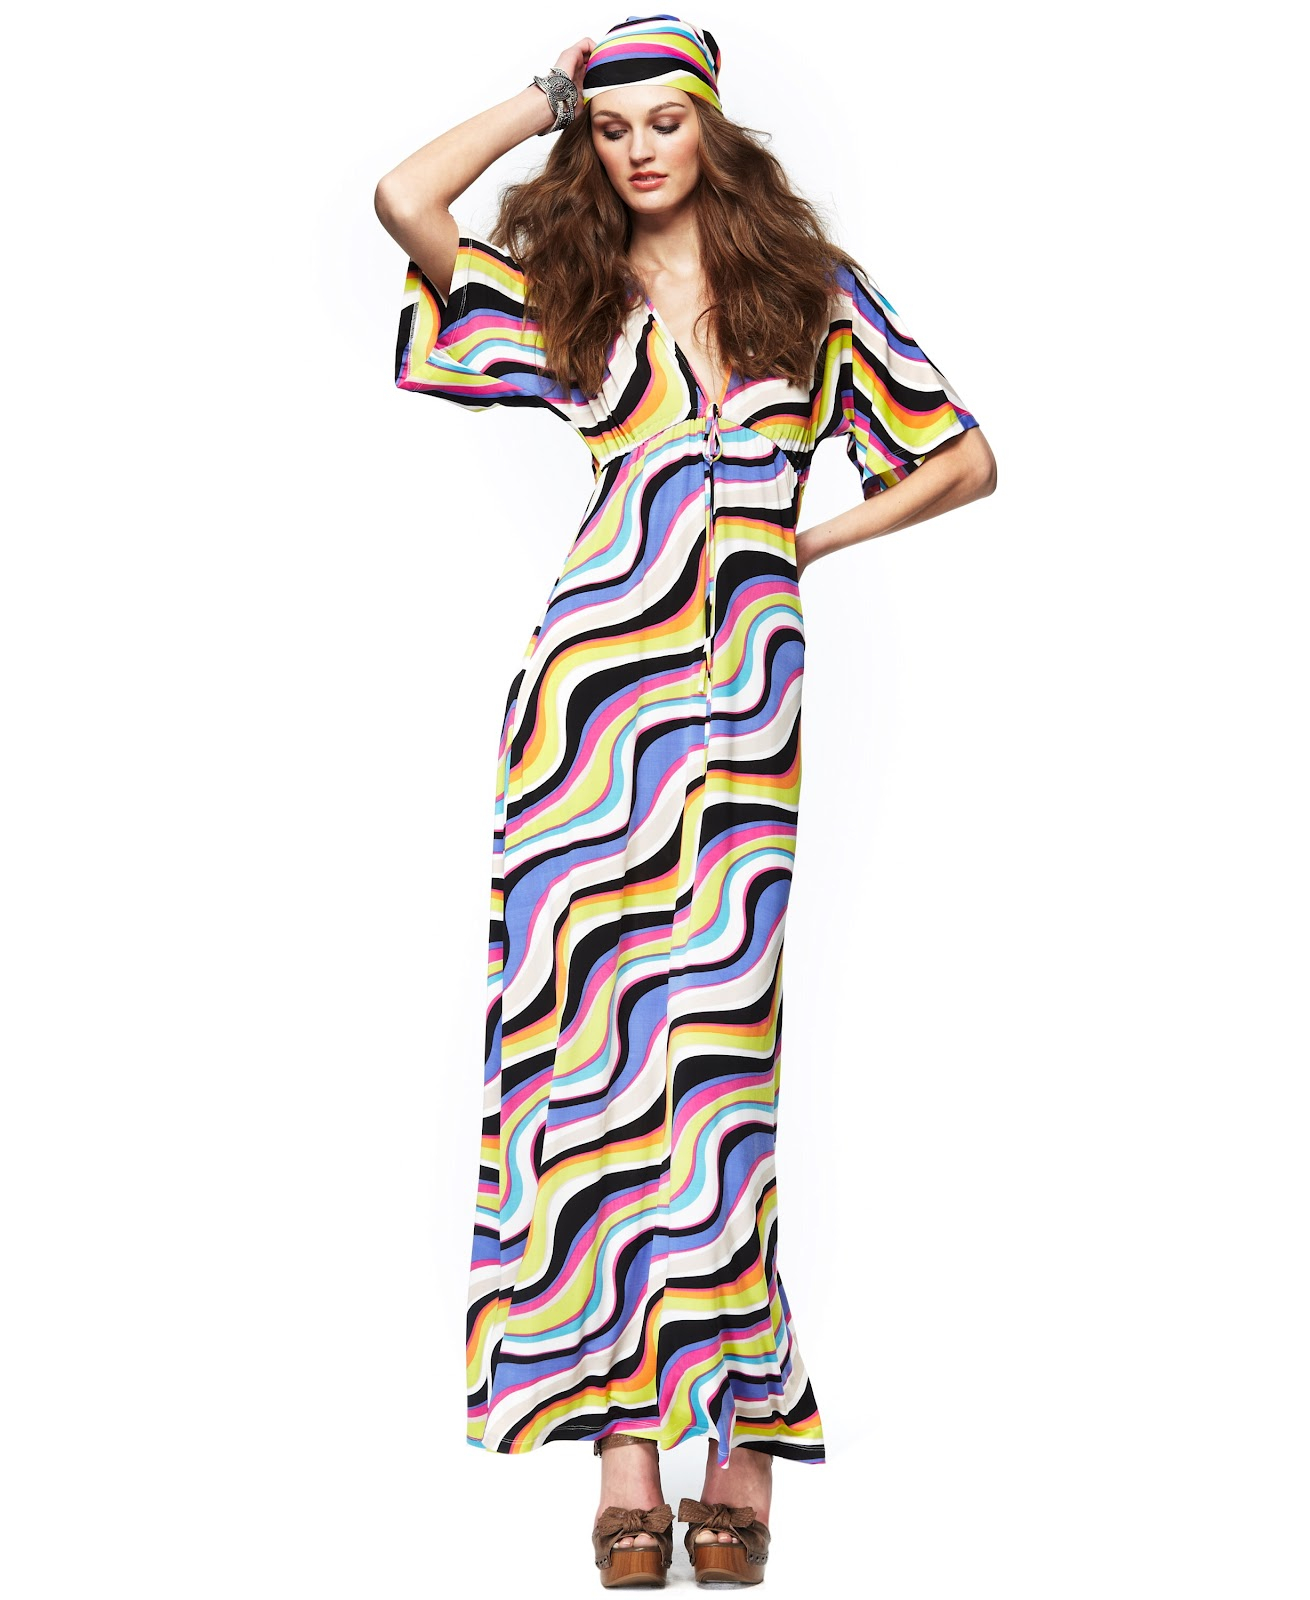 http://3.bp.blogspot.com/-gVboy4I1Rmg/T2Cg6am8nNI/AAAAAAAAF9A/oErGIfFTr9c/s1600/Fashion+Star+Exclusively+at+Macy\'s+Kimono-Sleeve+Maxi+Caftan+Dress+$89.jpg